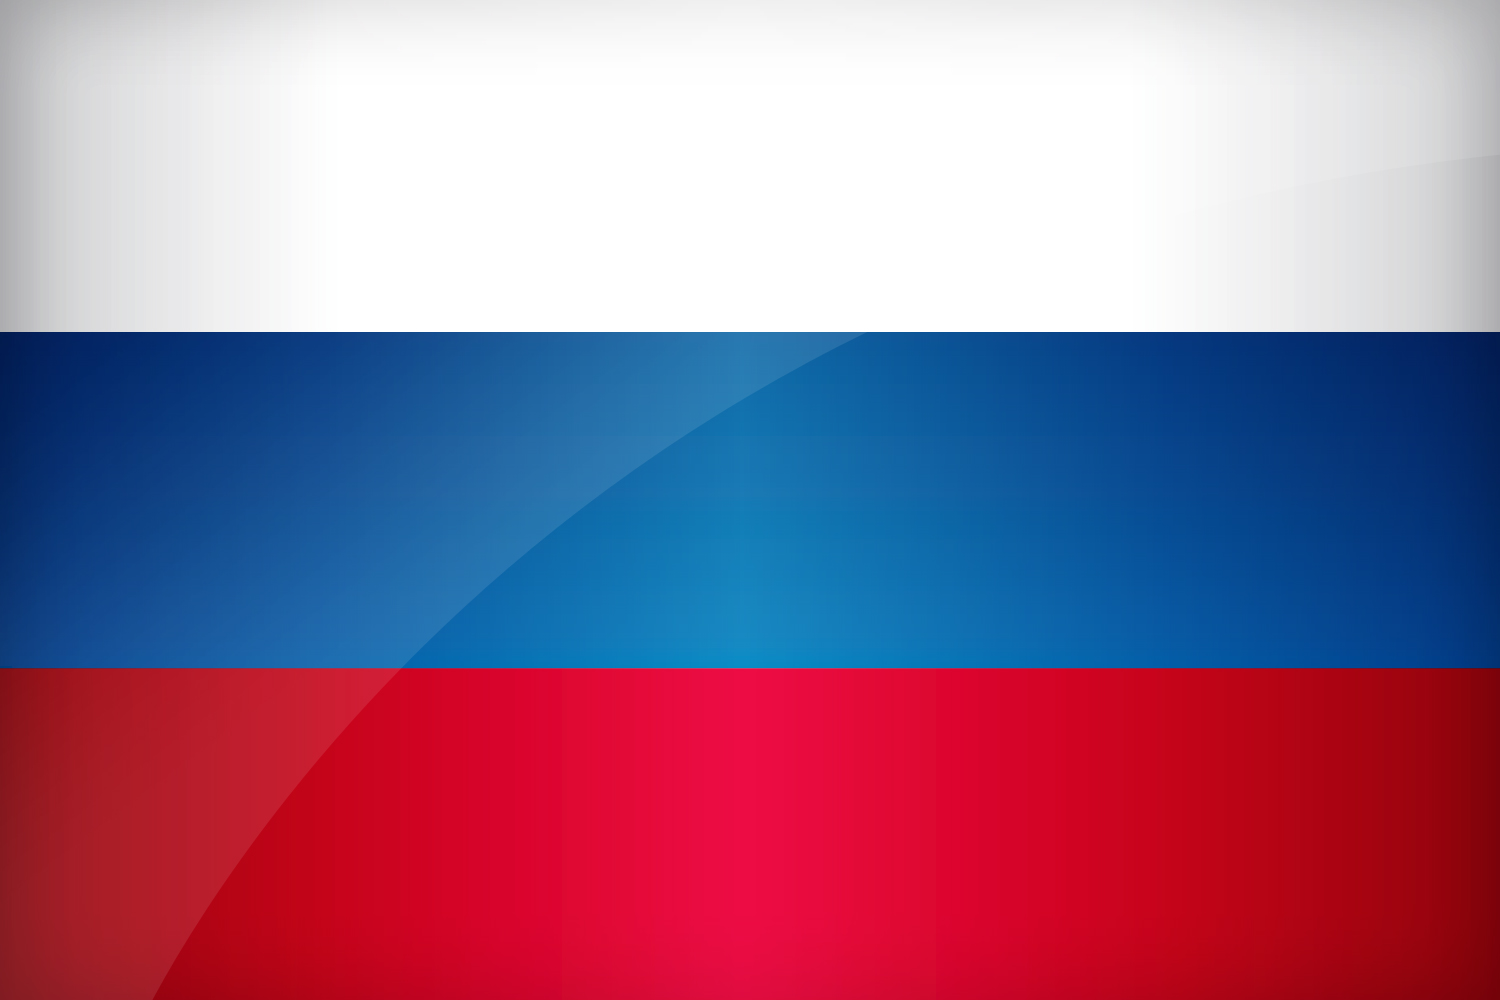 Flag Of Russia High Quality Background on Wallpapers Vista